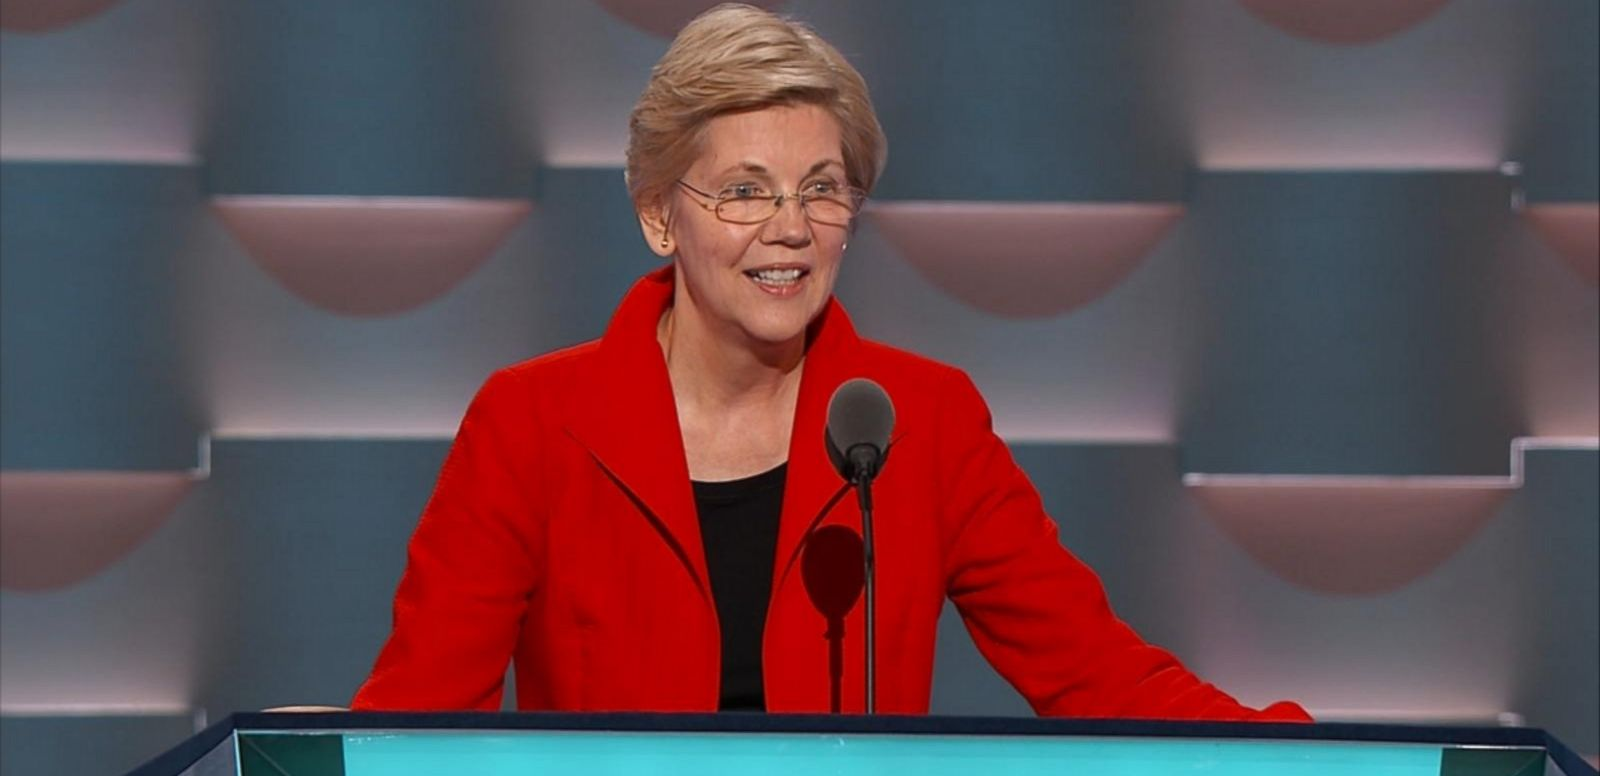 VIDEO: Elizabeth Warren Takes on the Ethics of Trump's Business Record